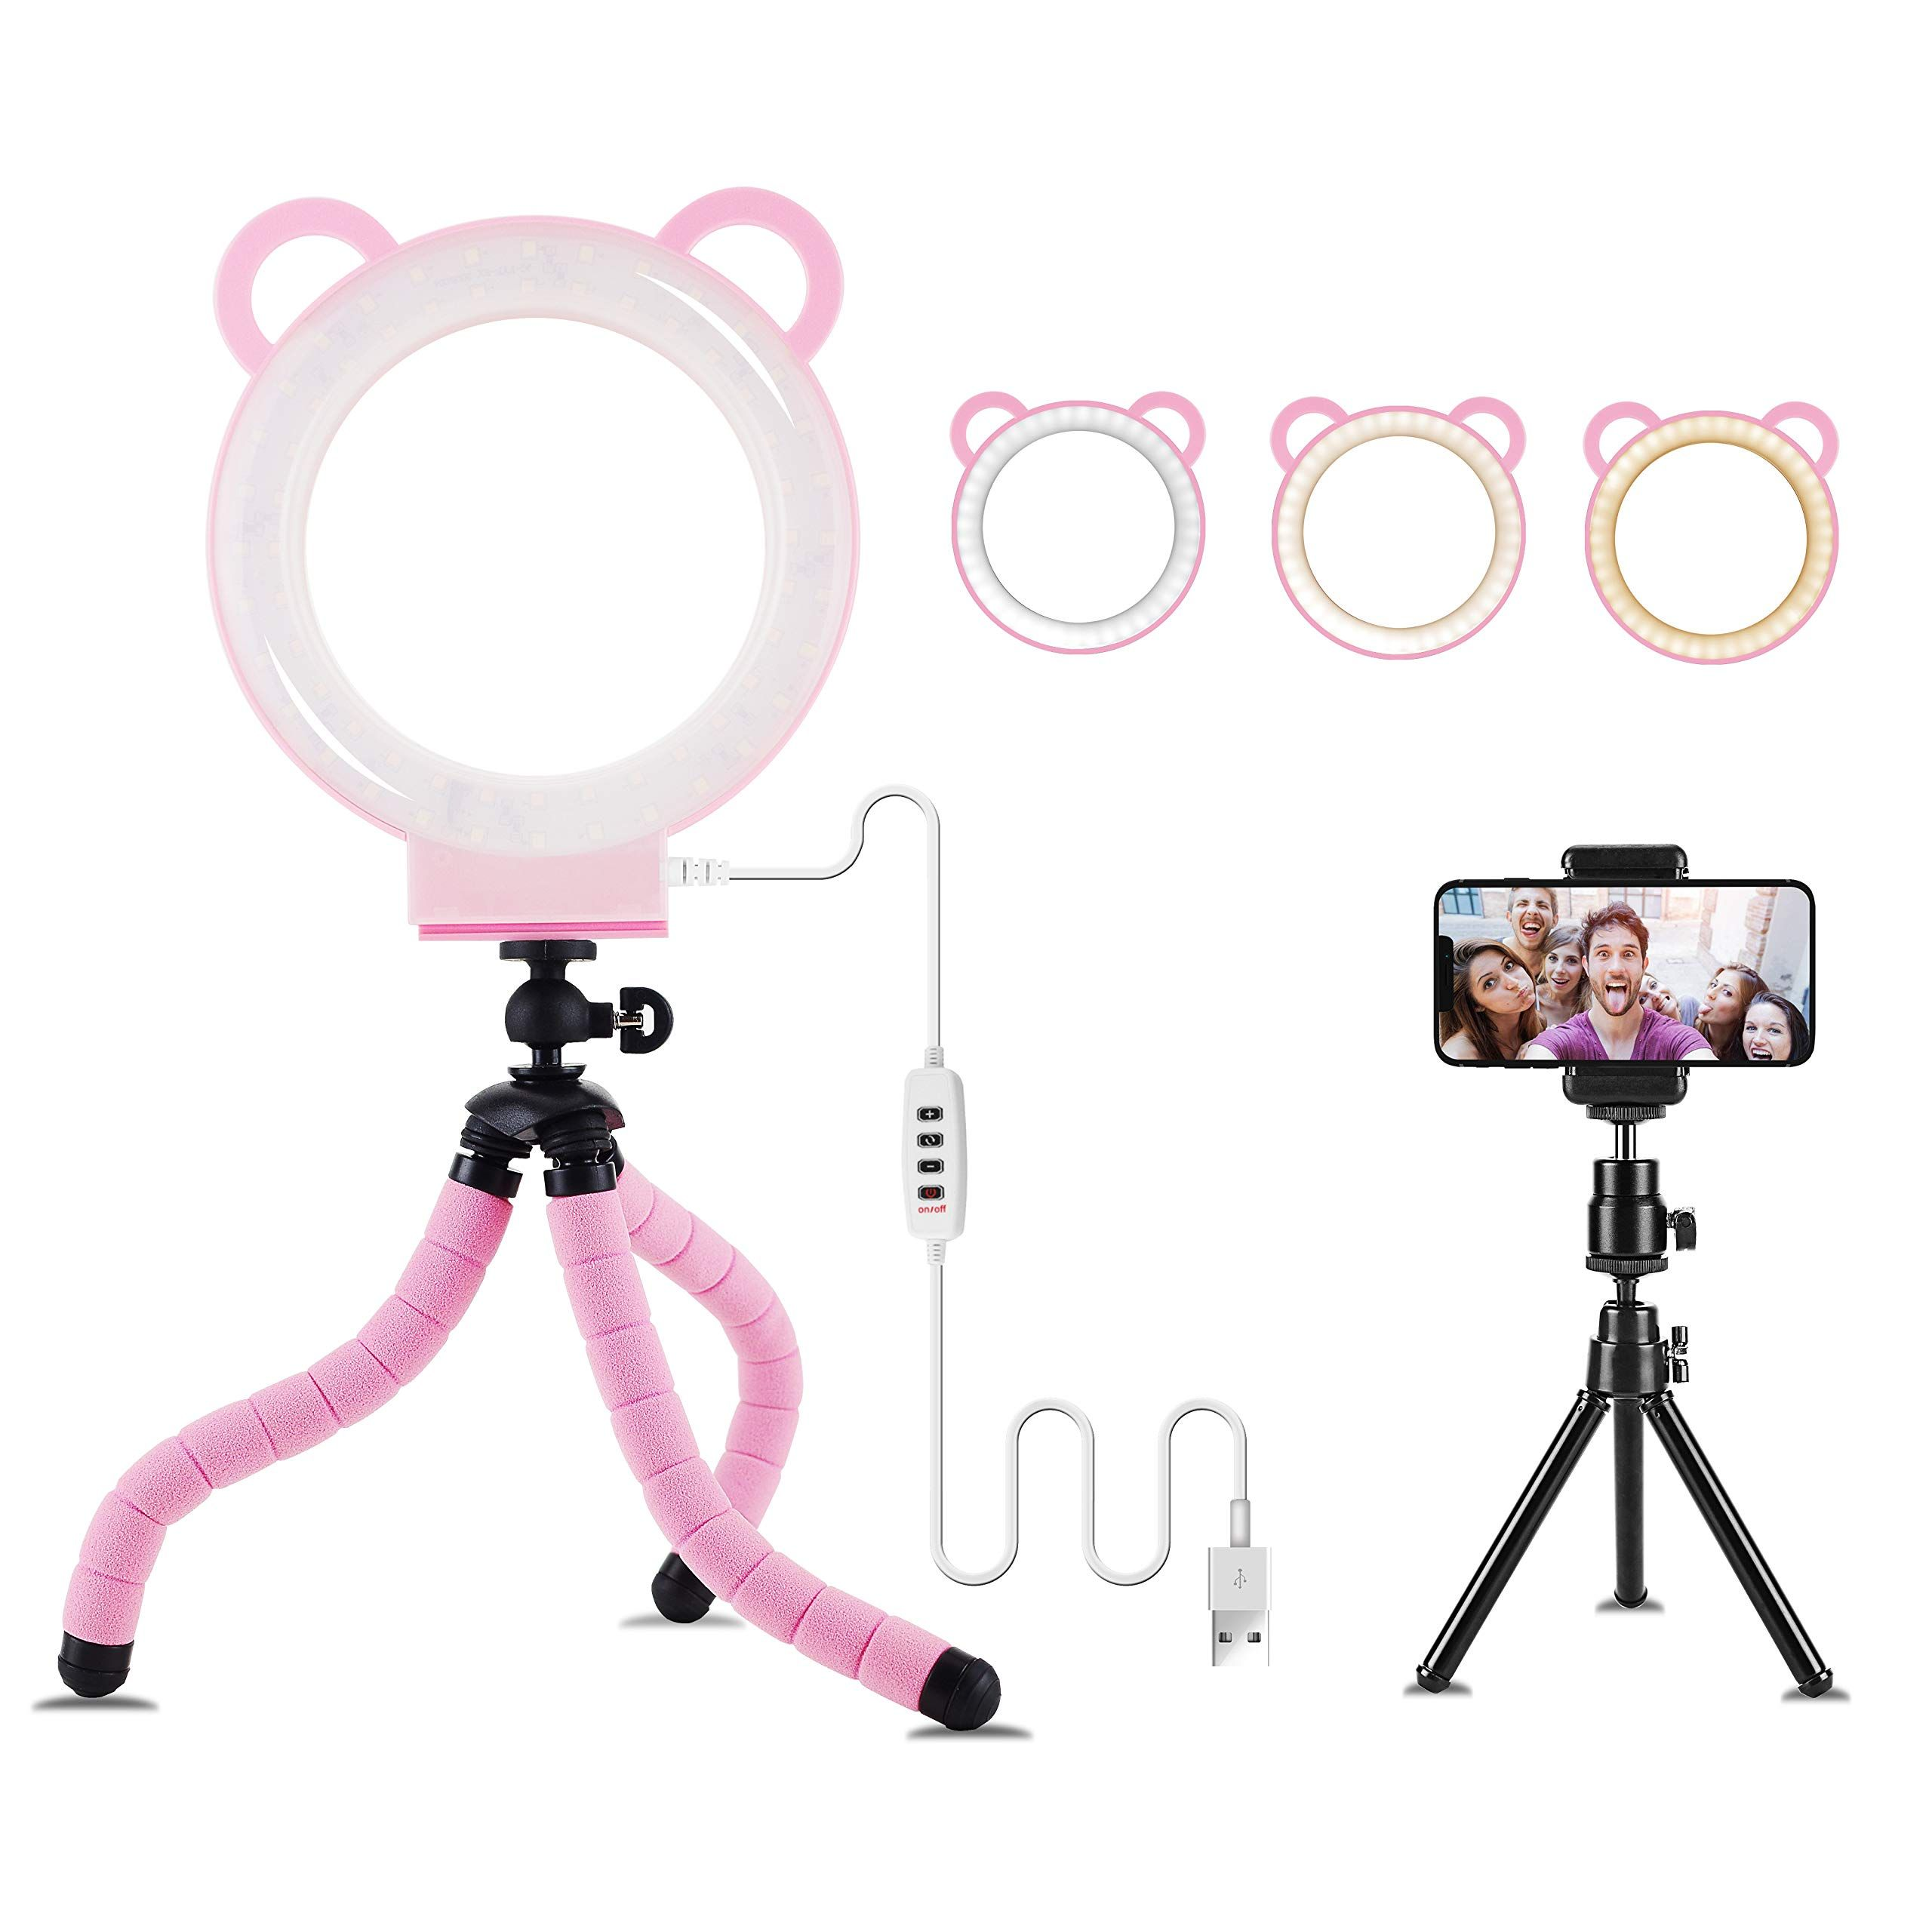 Lusweimi 6 Selfie Ring Light Pho Selfie Ring Light Ring Light Photo Selfie Light